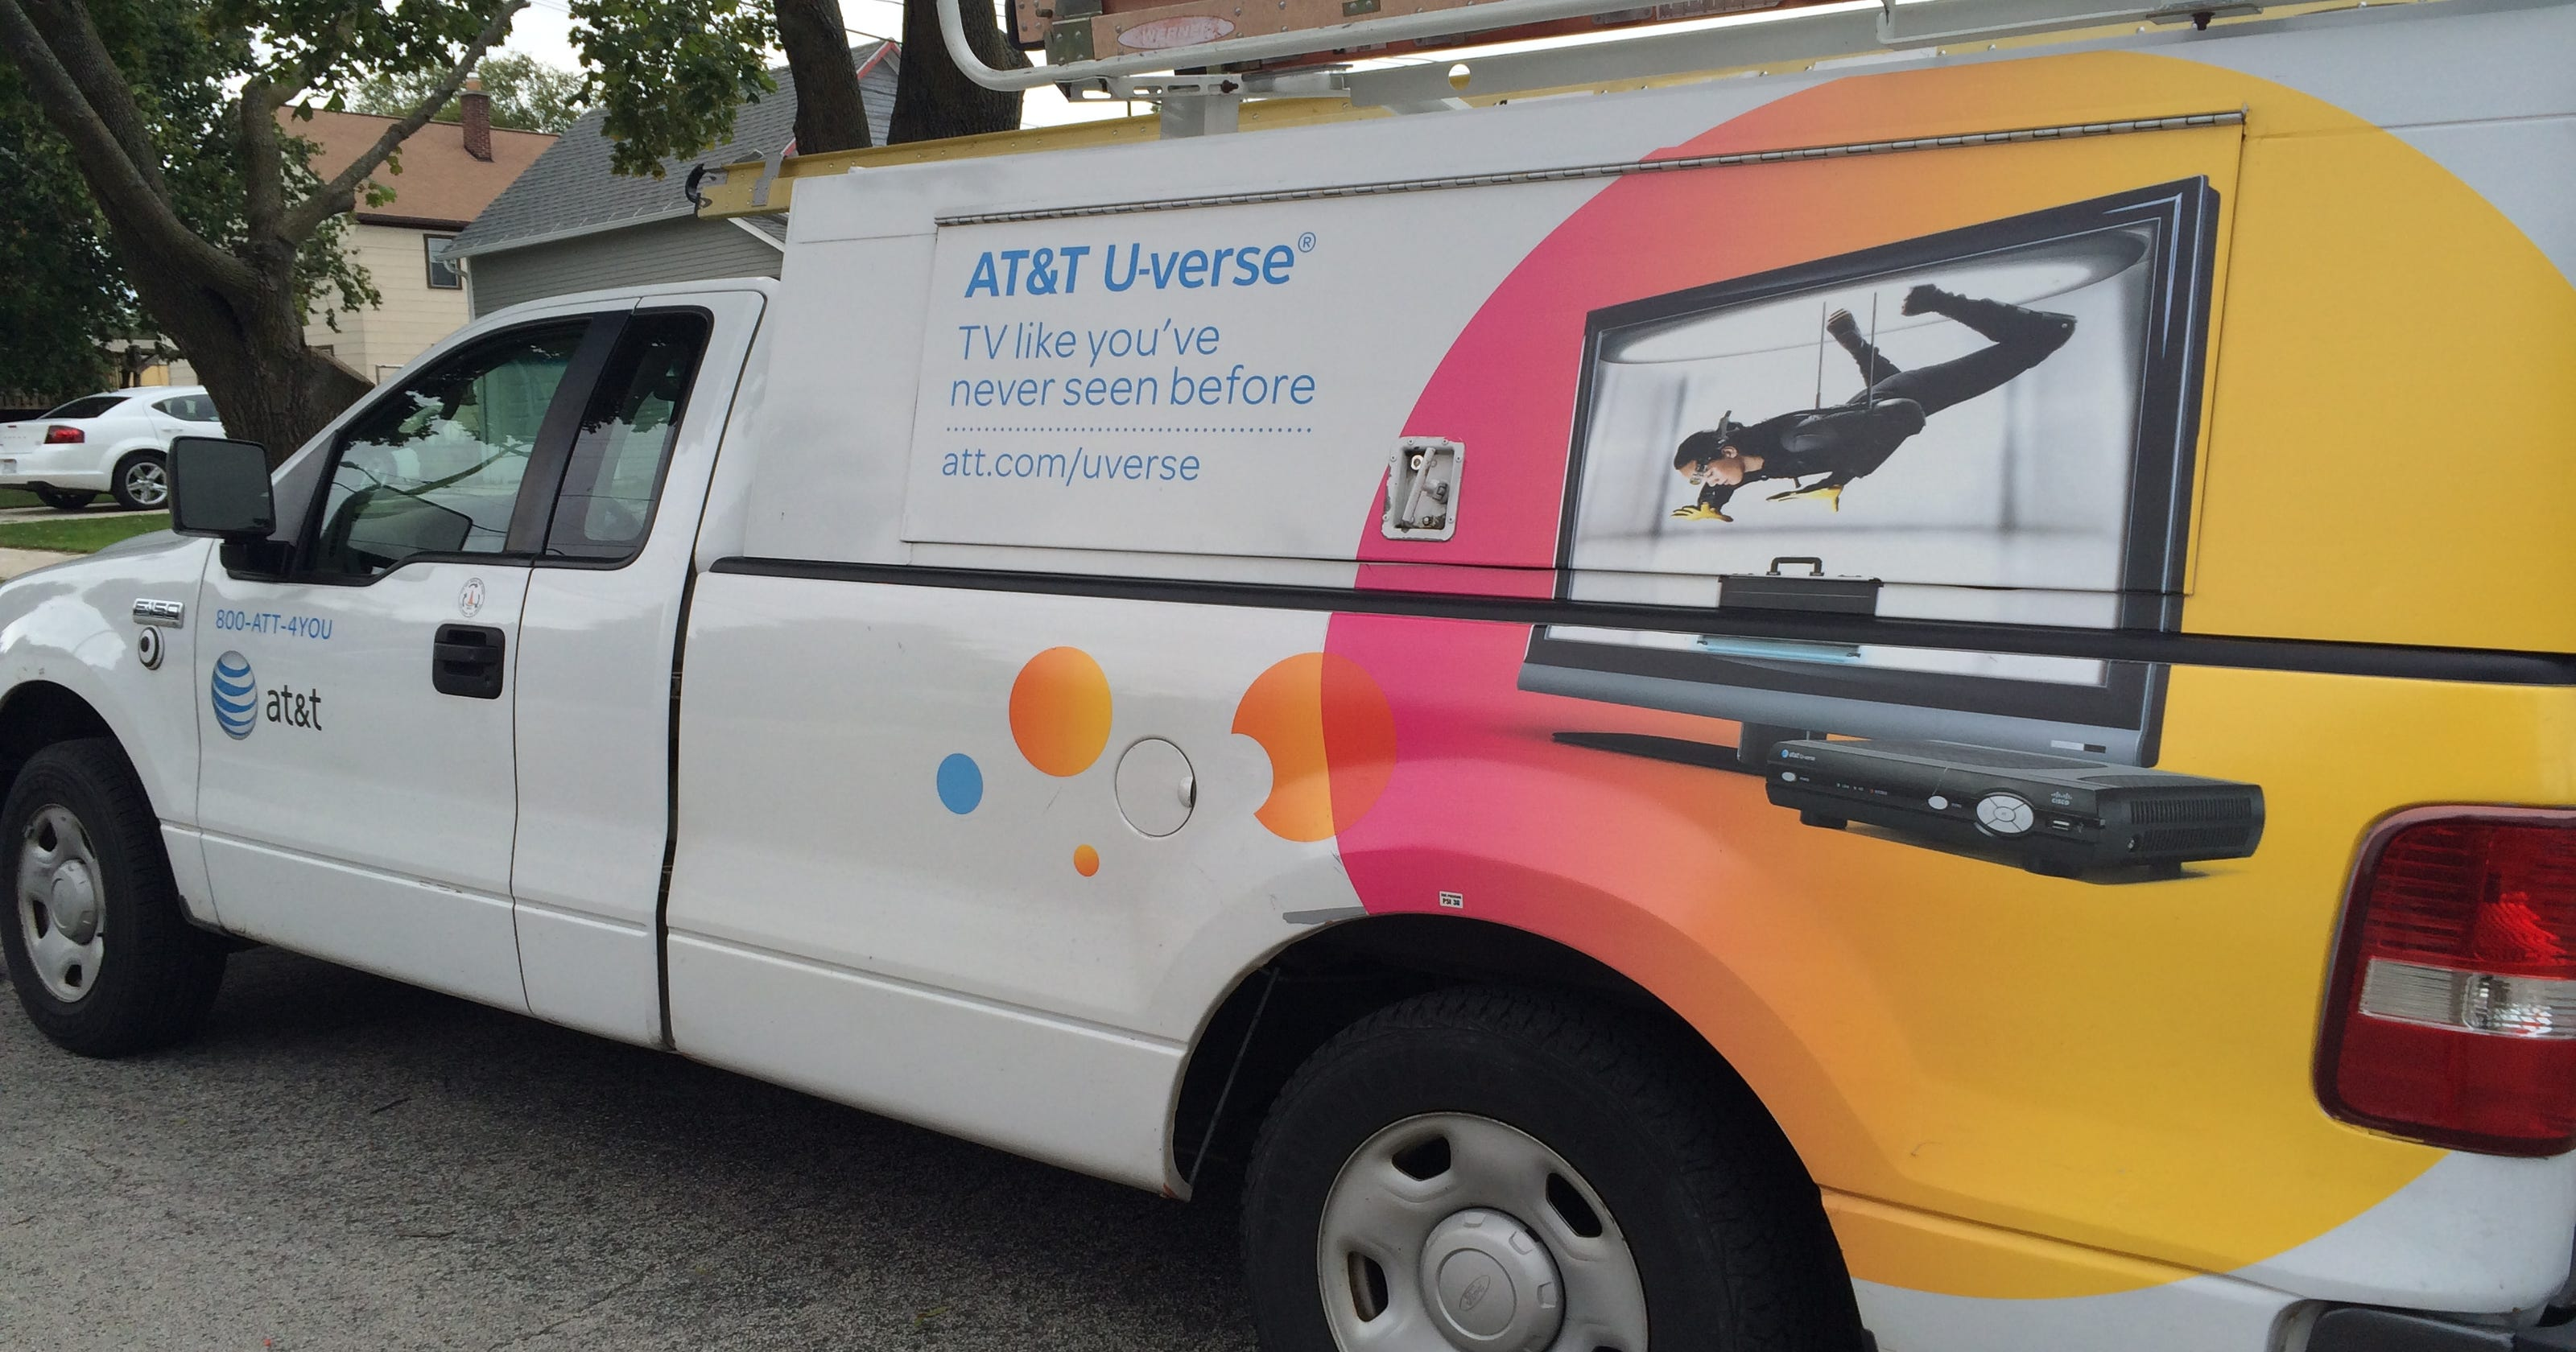 Att Quietly Lays Off Thousands After Touting Bonuses Uverse Record